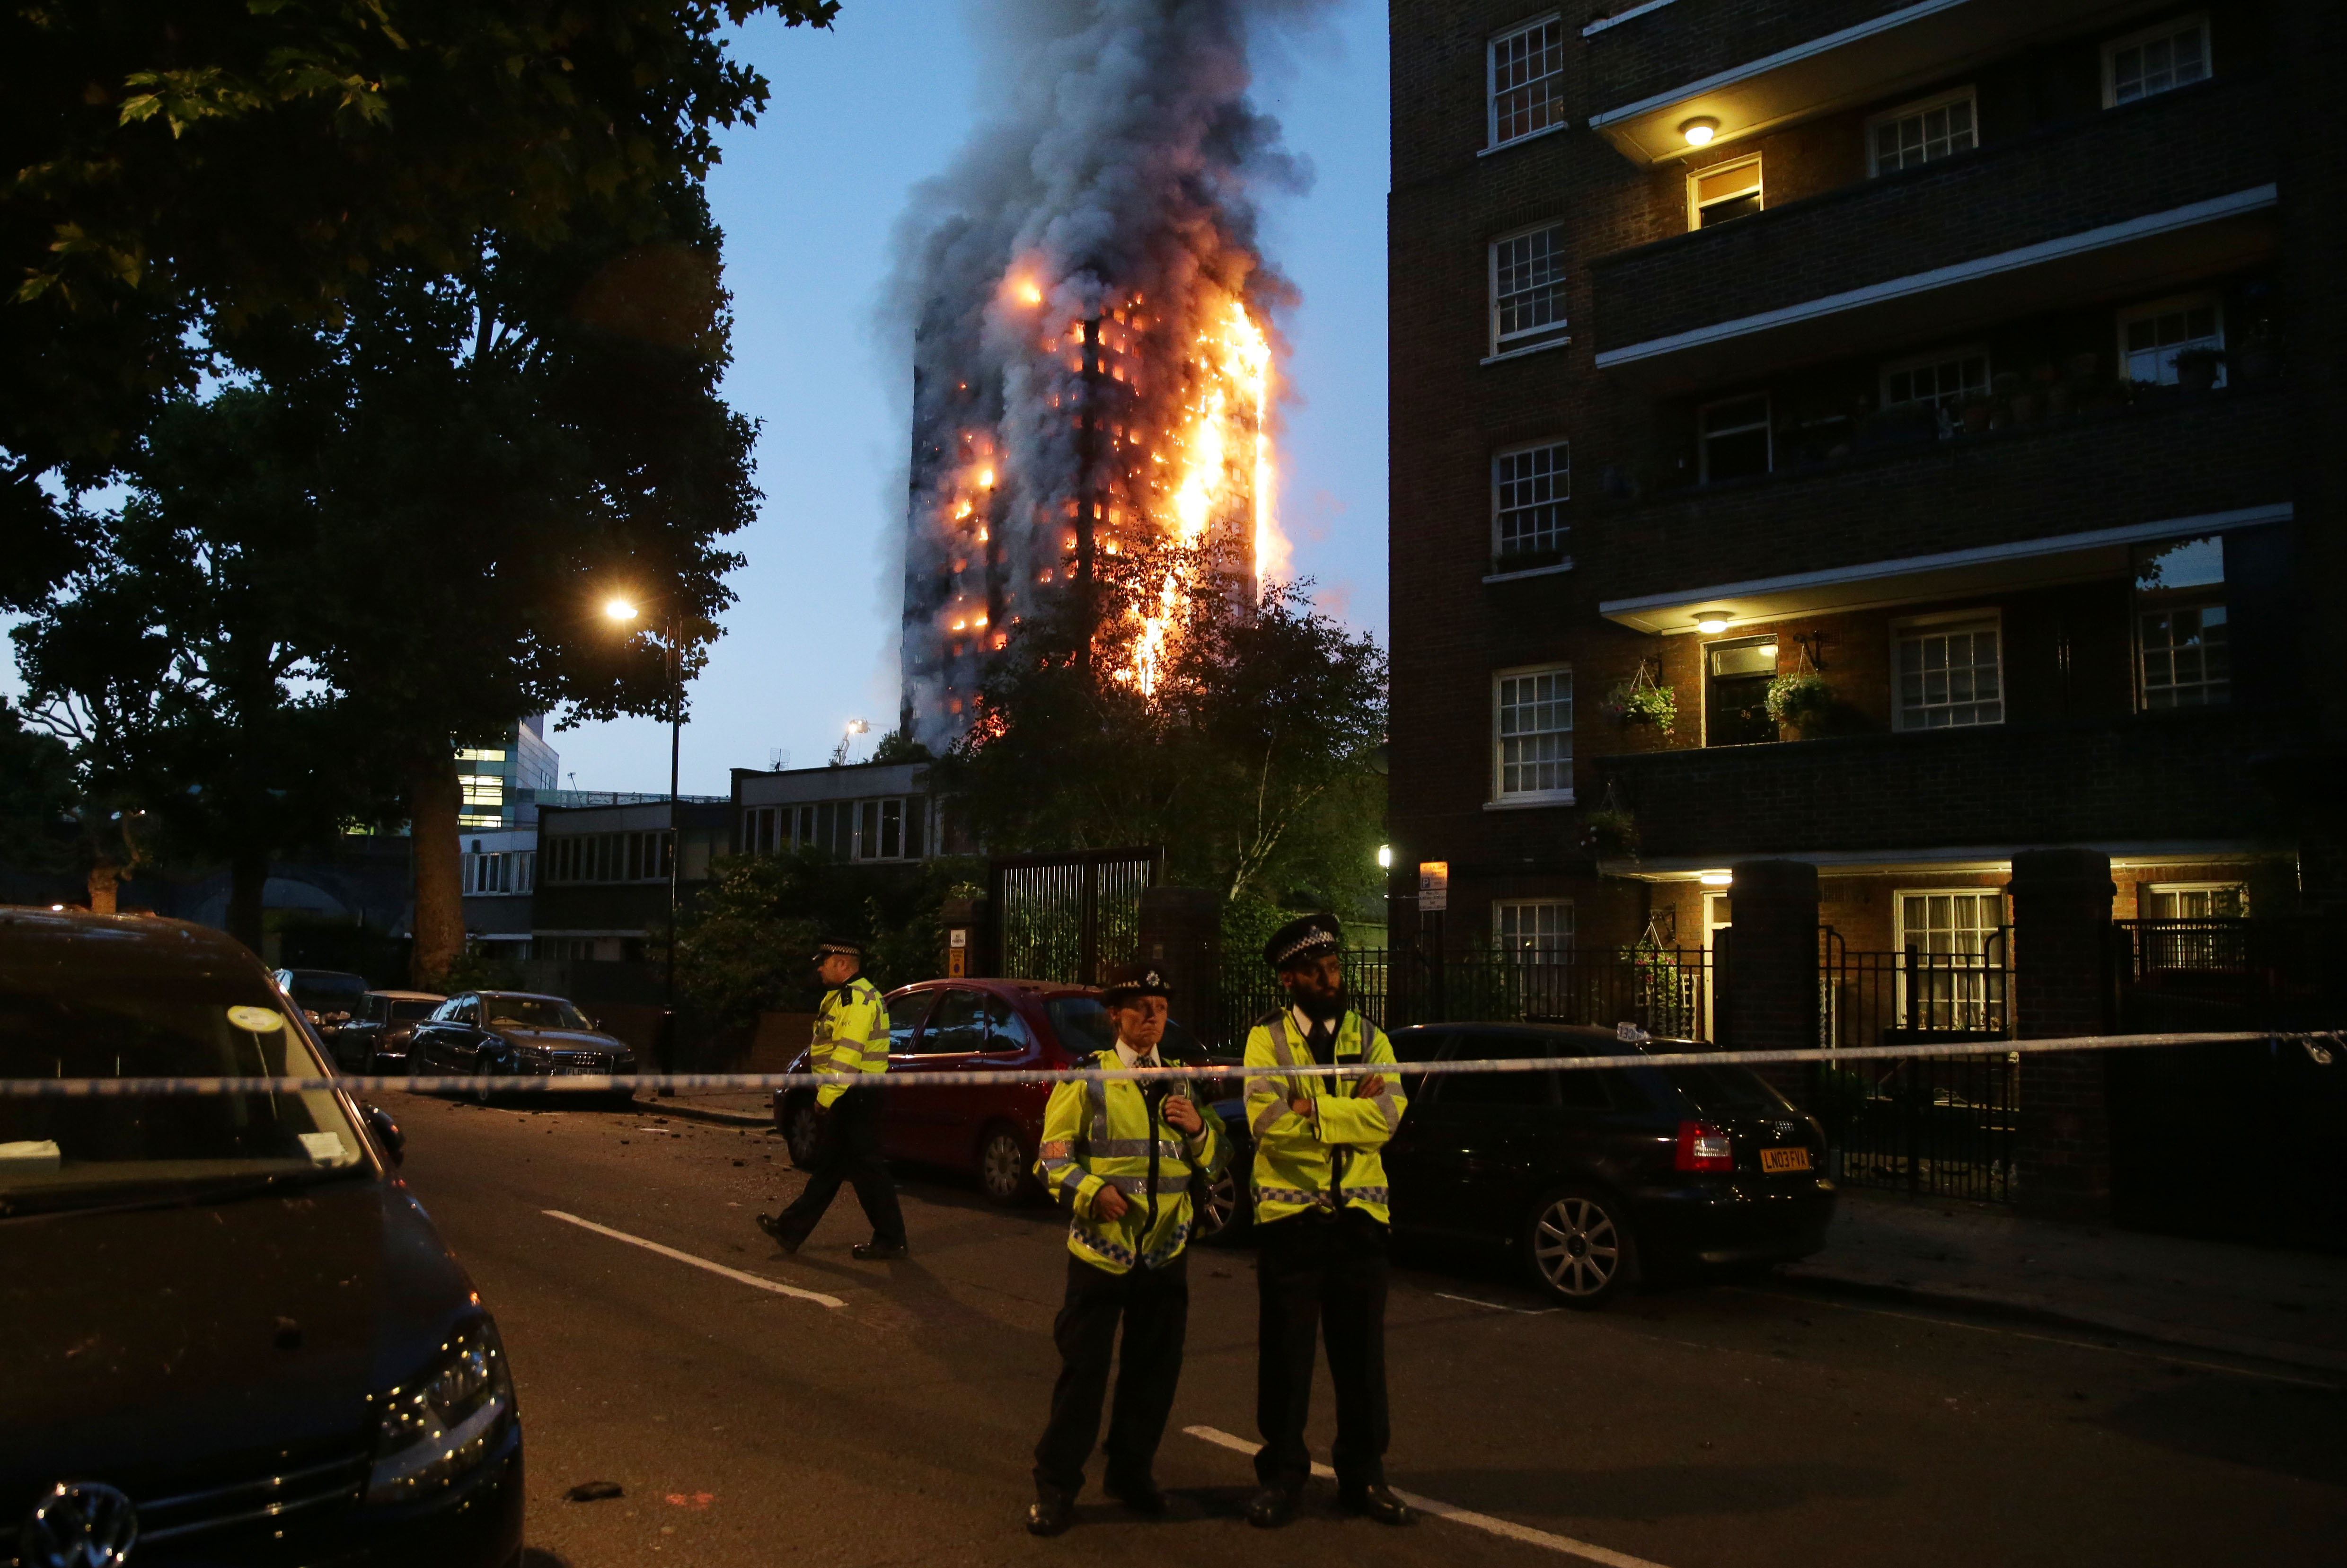 A huge fire engulfs the Grenfell Tower in West London on June 14, 2017. (DANIEL LEAL-OLIVAS/AFP/Getty Images)